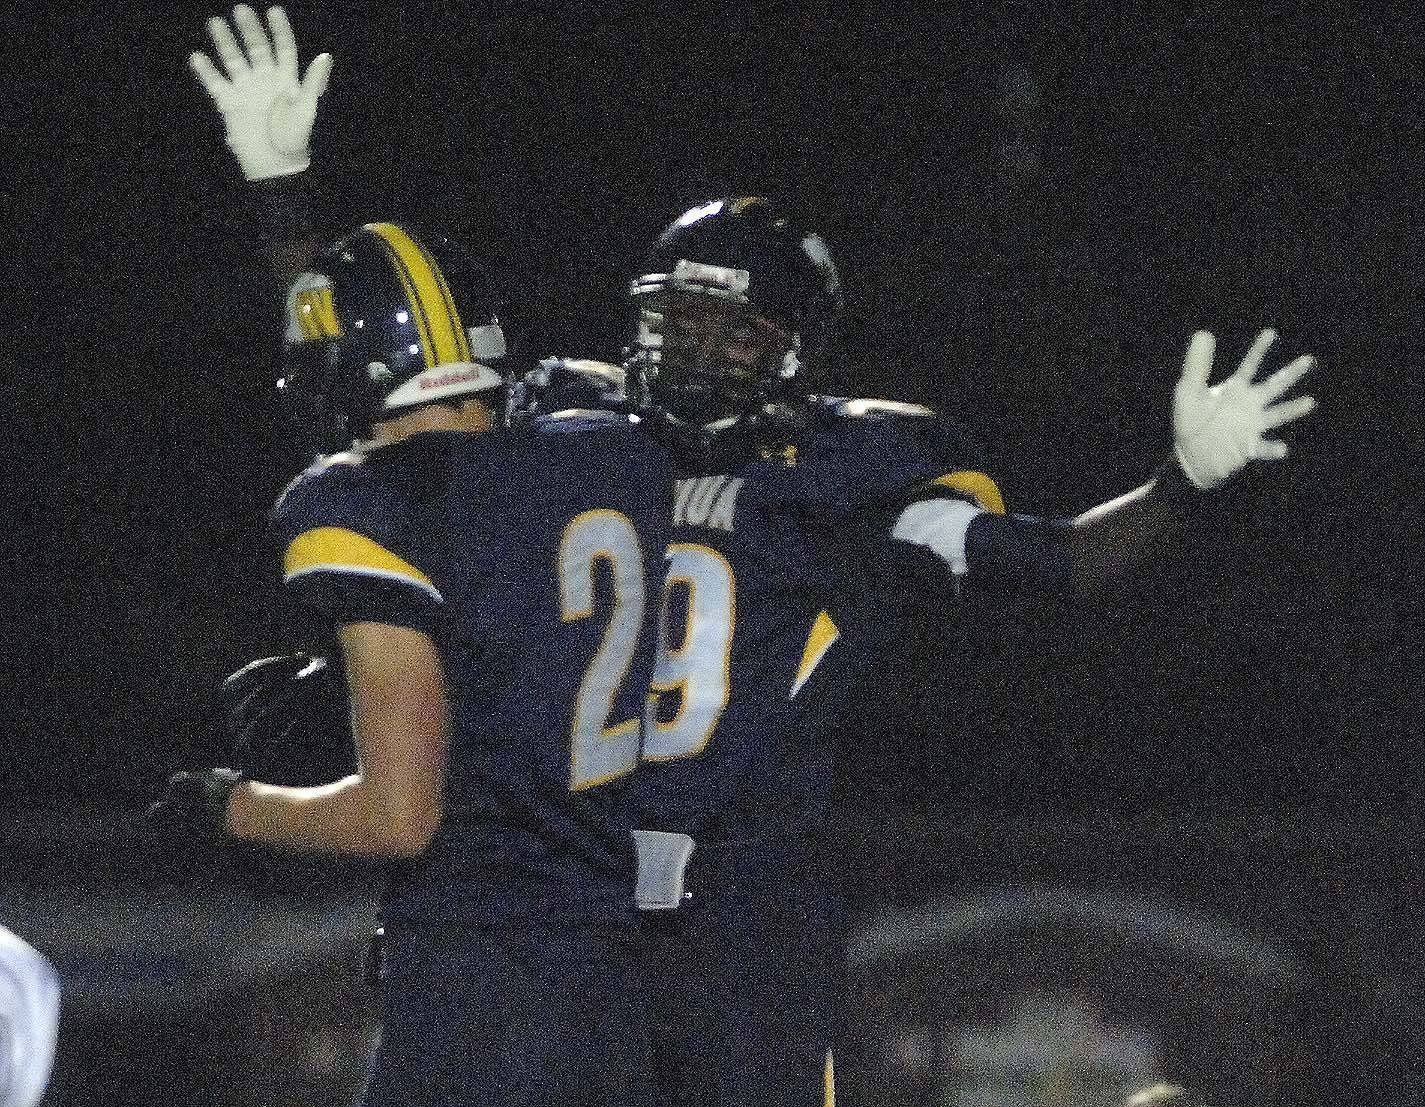 WEEK 9- Jack Norgaard,left, and Evan Jackson of Neuqua Valley celebrate .